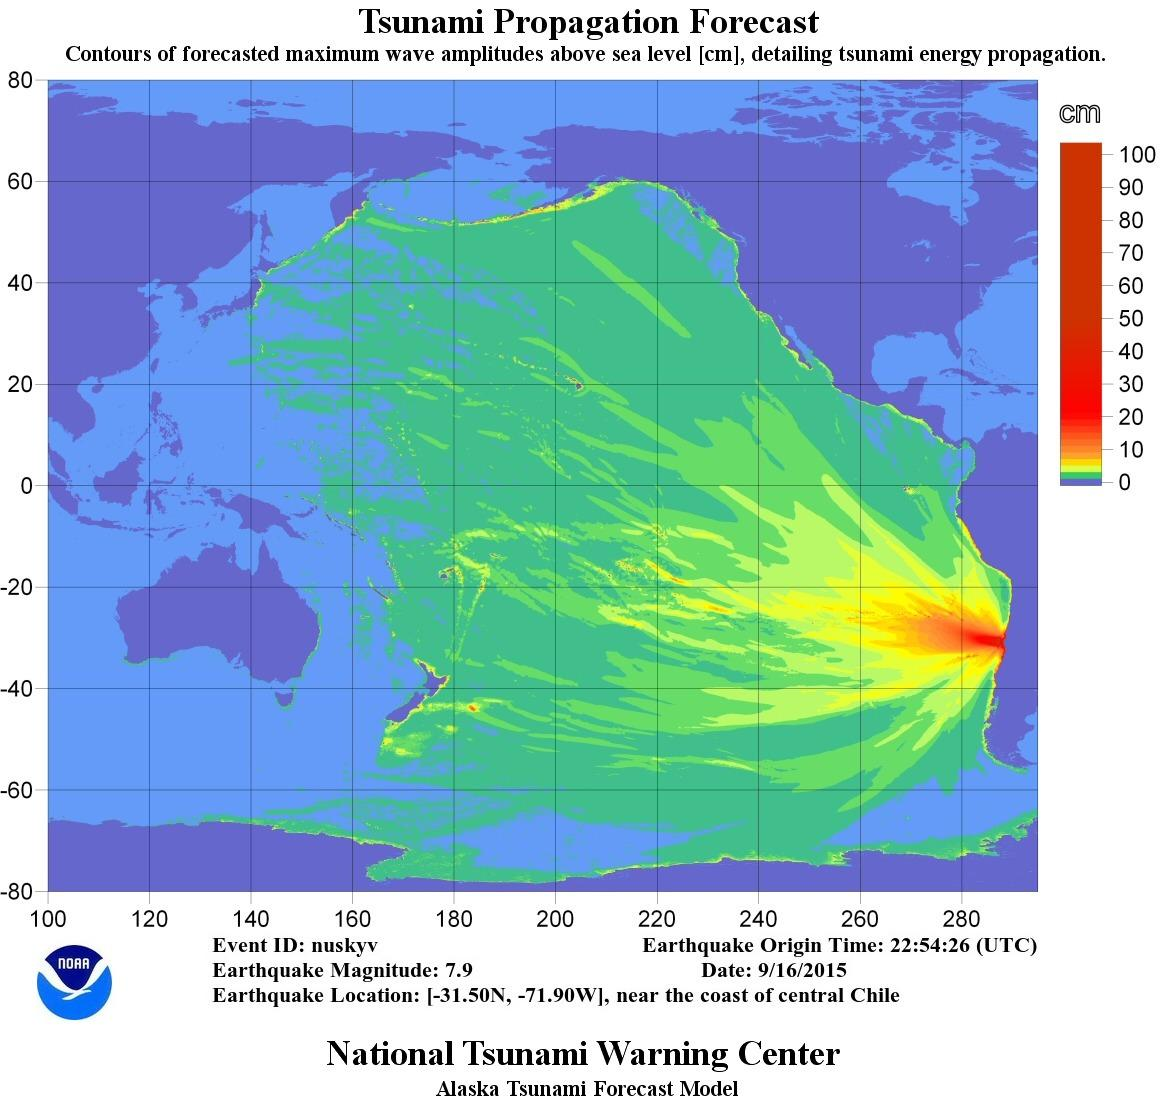 #Tsunami energy map shows lower potential threat to U.S. west coast than for Hawaii/central Pacific. #earthquake http://t.co/6loF6qj9GF